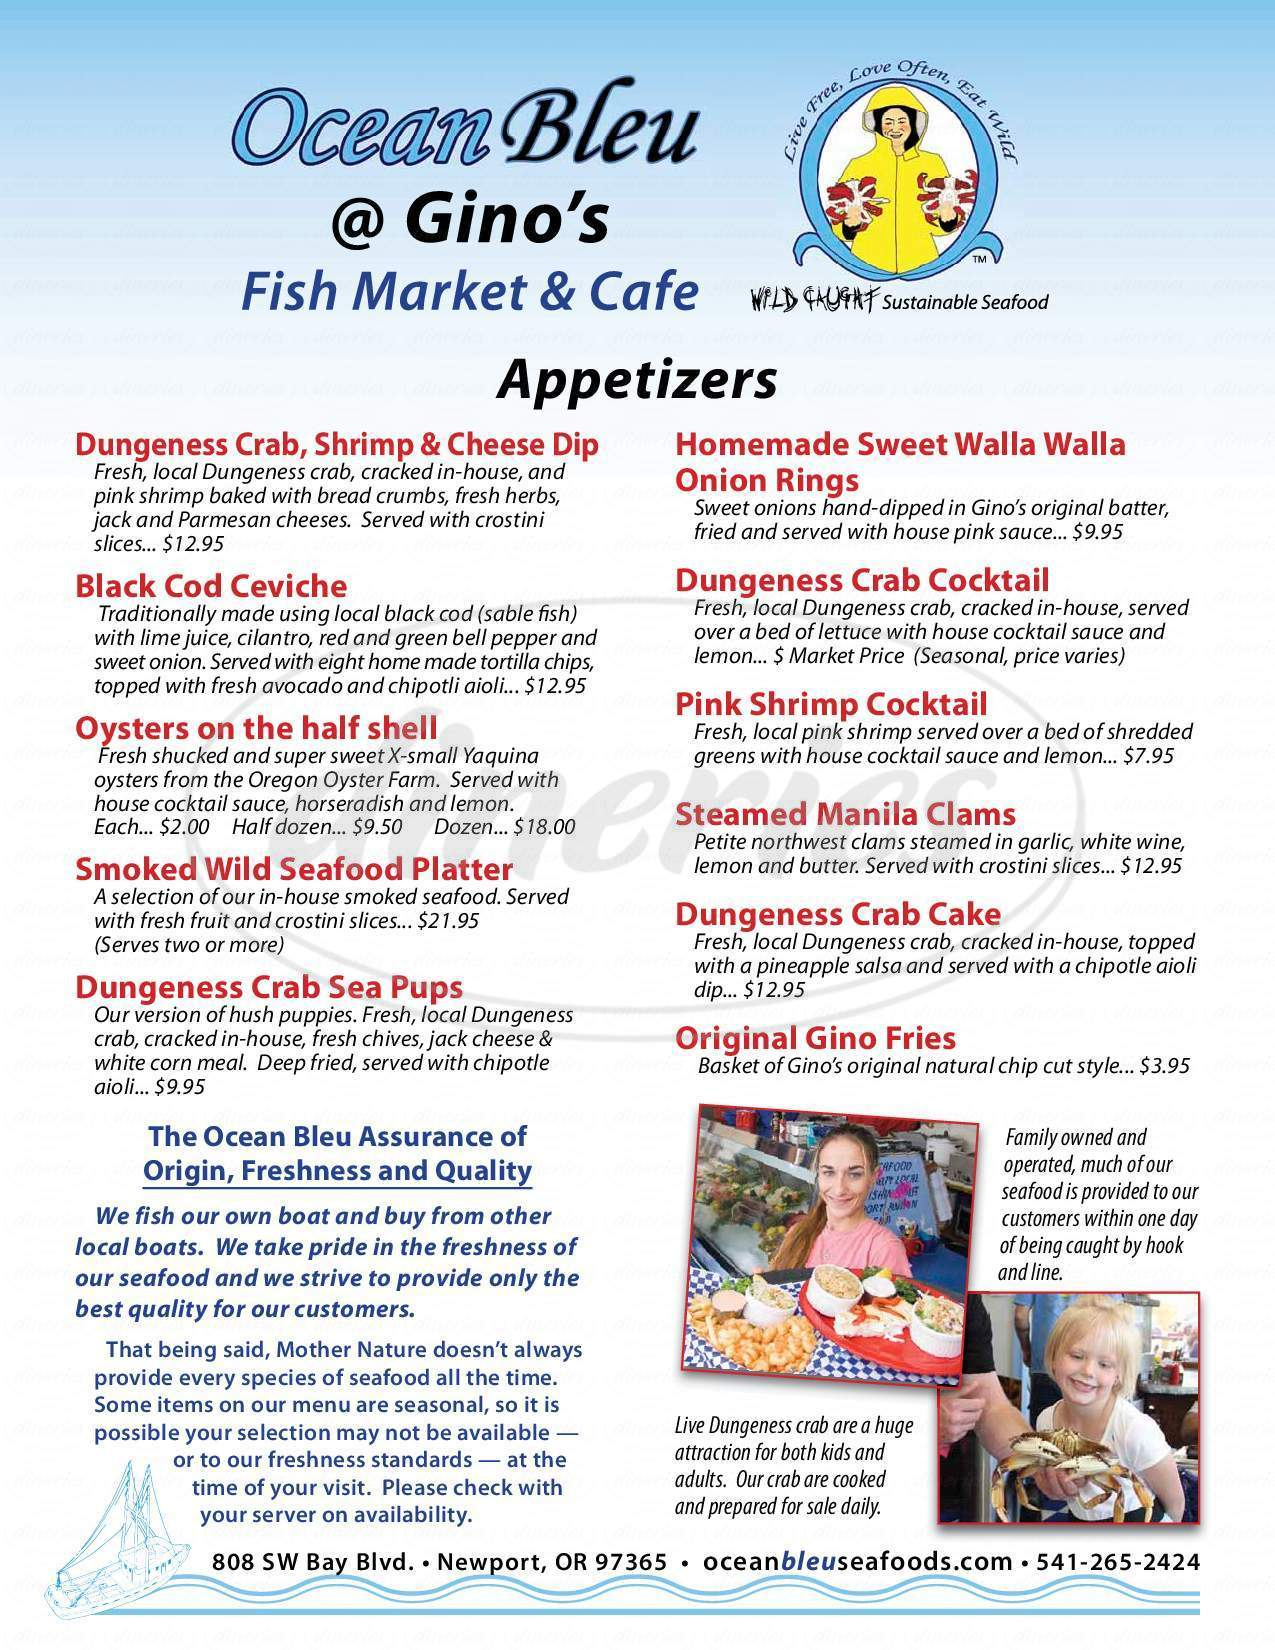 menu for OceanBleu at Gino's Fish Market & Cafe